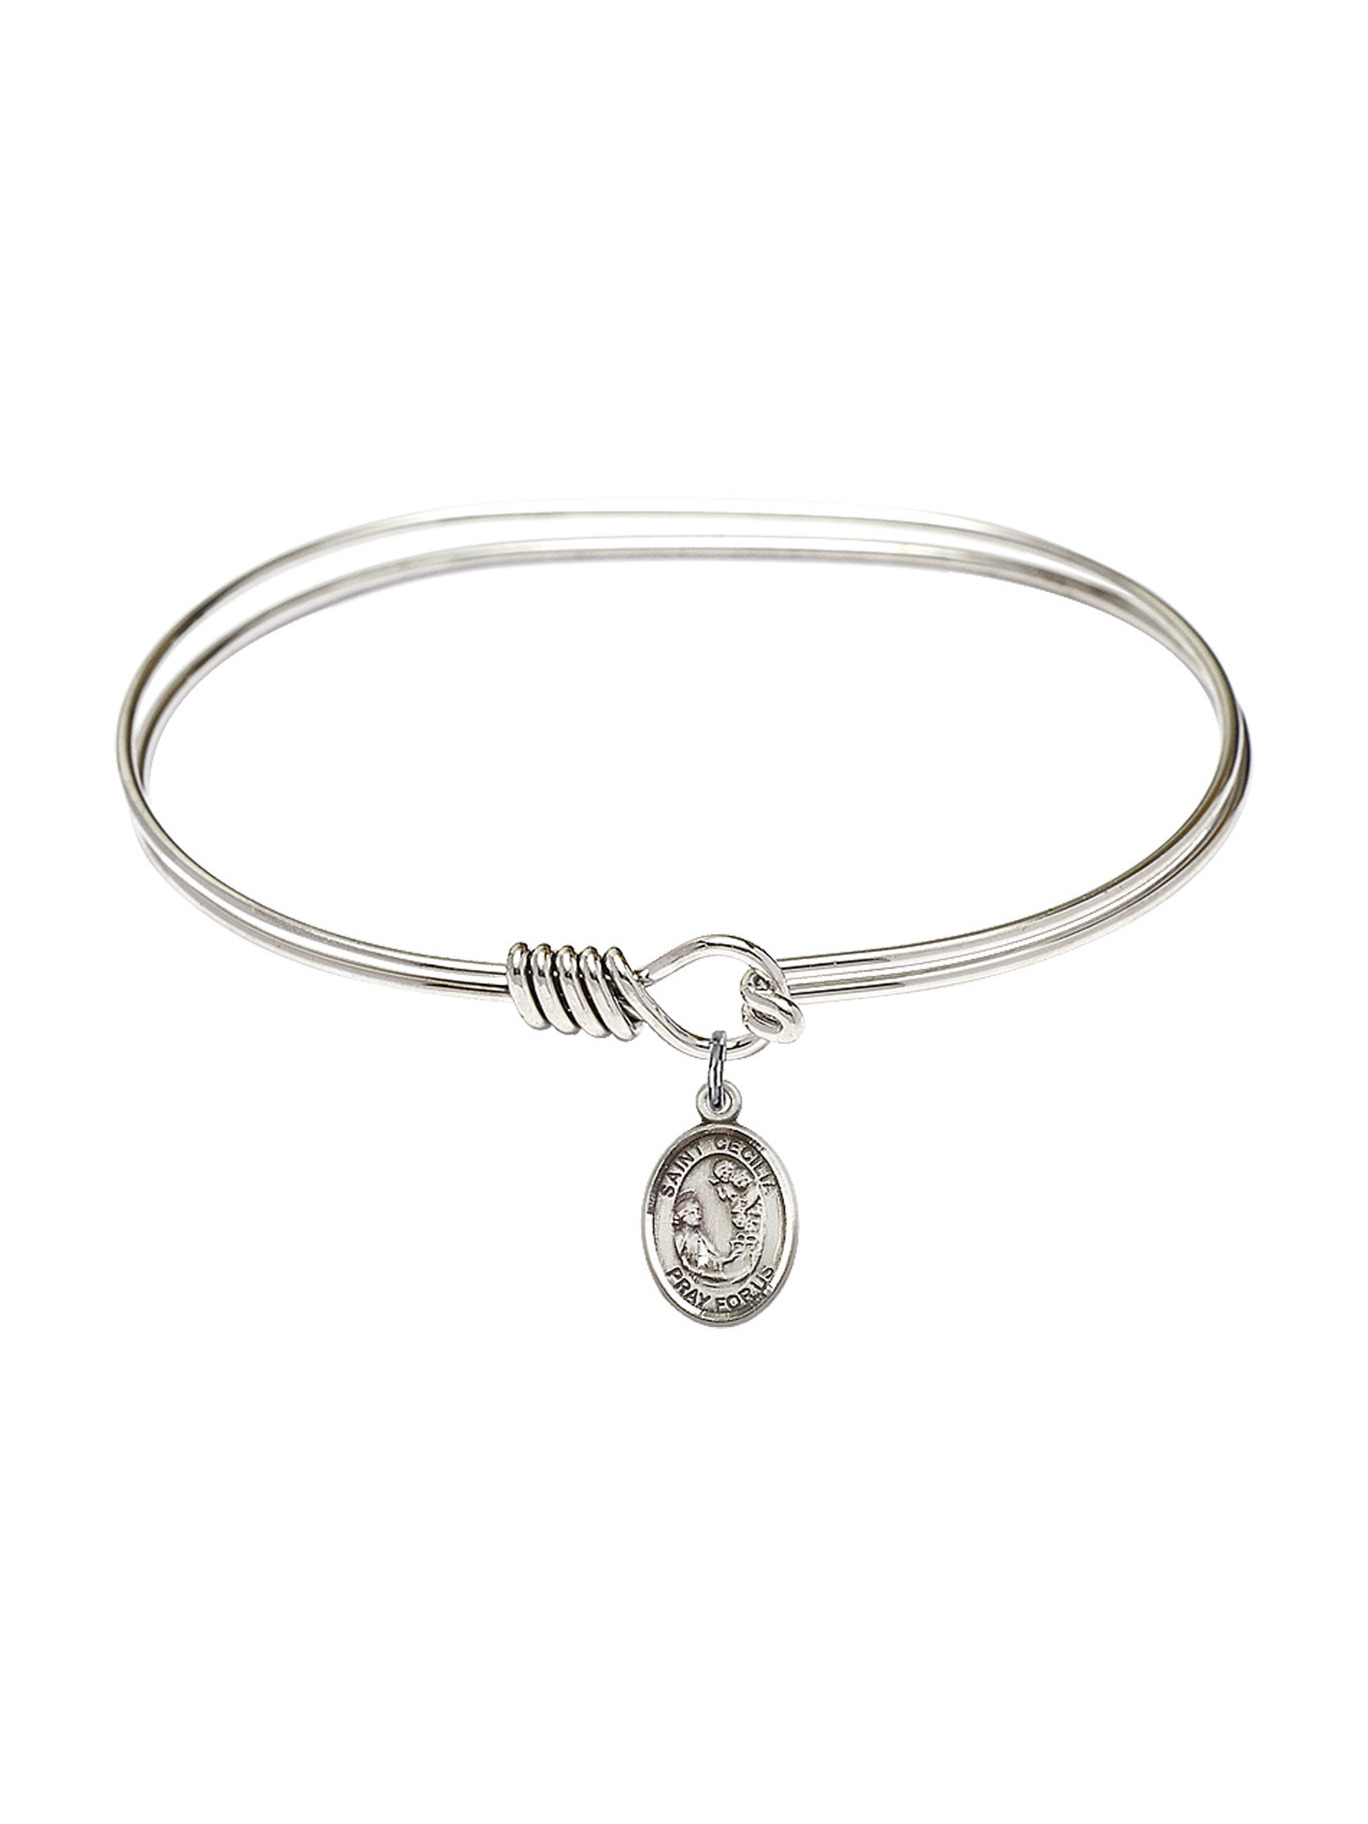 Bonyak Jewelry Round Eye Hook Bangle Bracelet w//St Cecilia in Sterling Silver